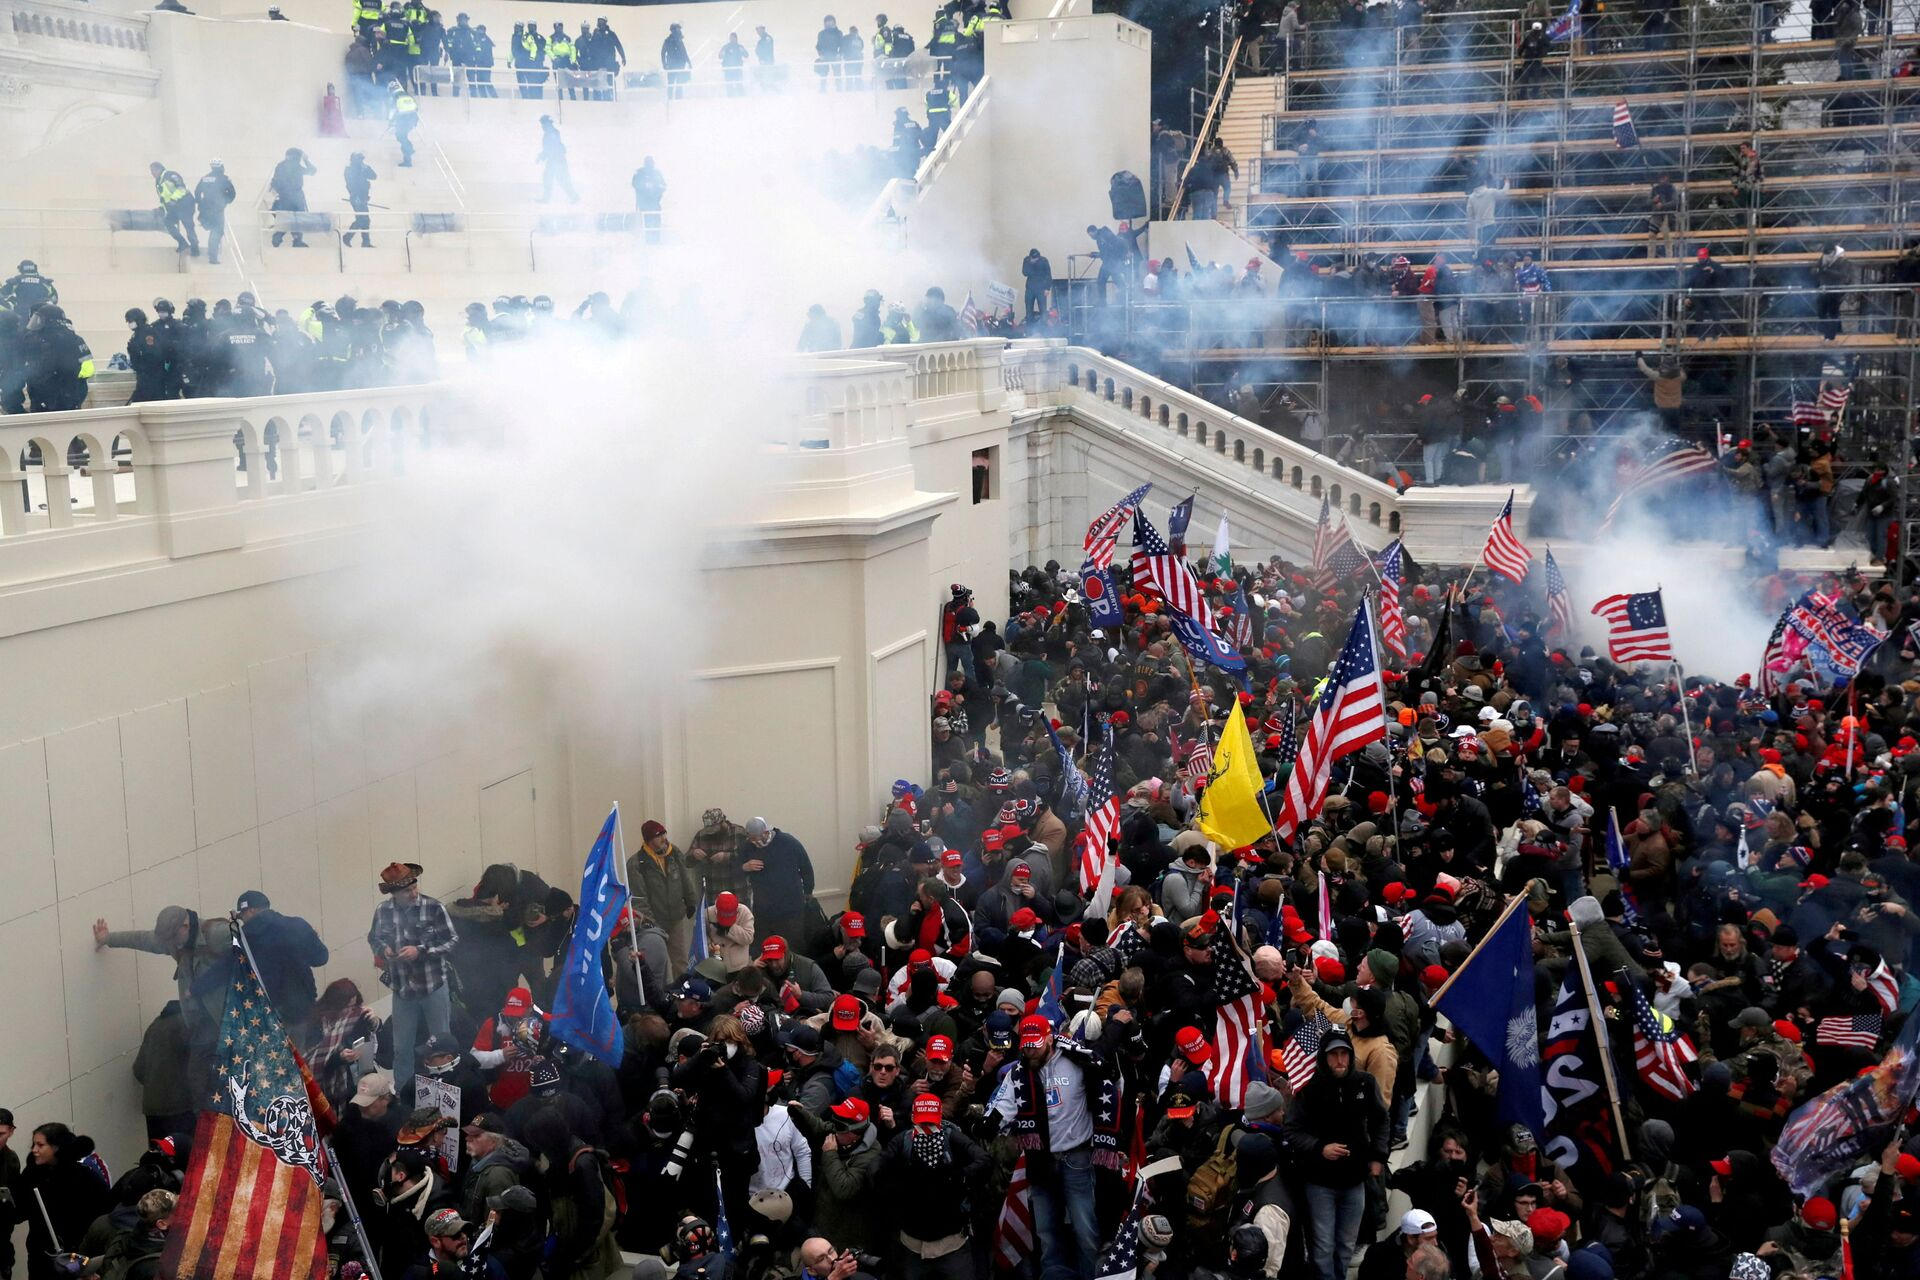 Police release tear gas into a crowd of pro-Trump protesters during clashes at a rally to contest the certification of the 2020 U.S. presidential election results by the U.S. Congress, at the U.S. Capitol Building in Washington, U.S, January 6, 2021. - Sputnik International, 1920, 20.09.2021